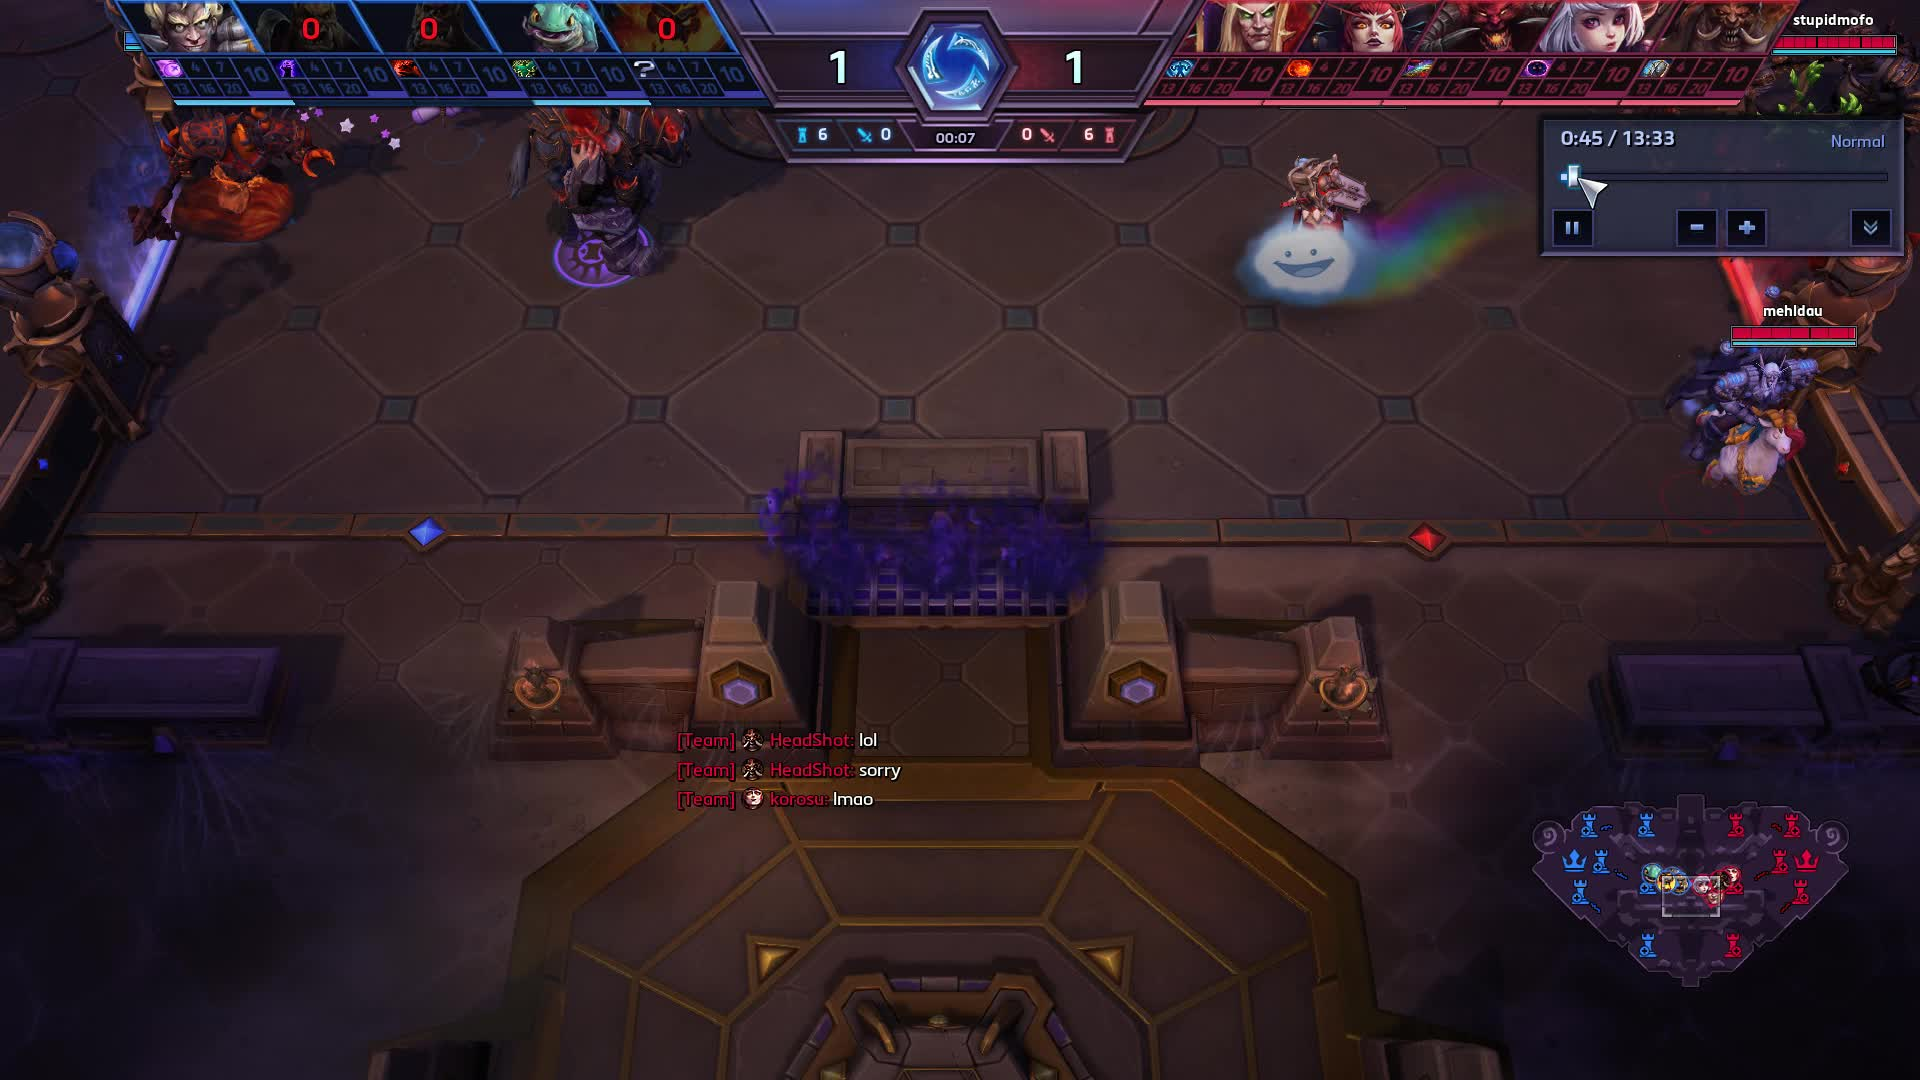 heroesofthestorm, Heroes of the Storm 2019.03.16 - 13.55.04.01 GIFs